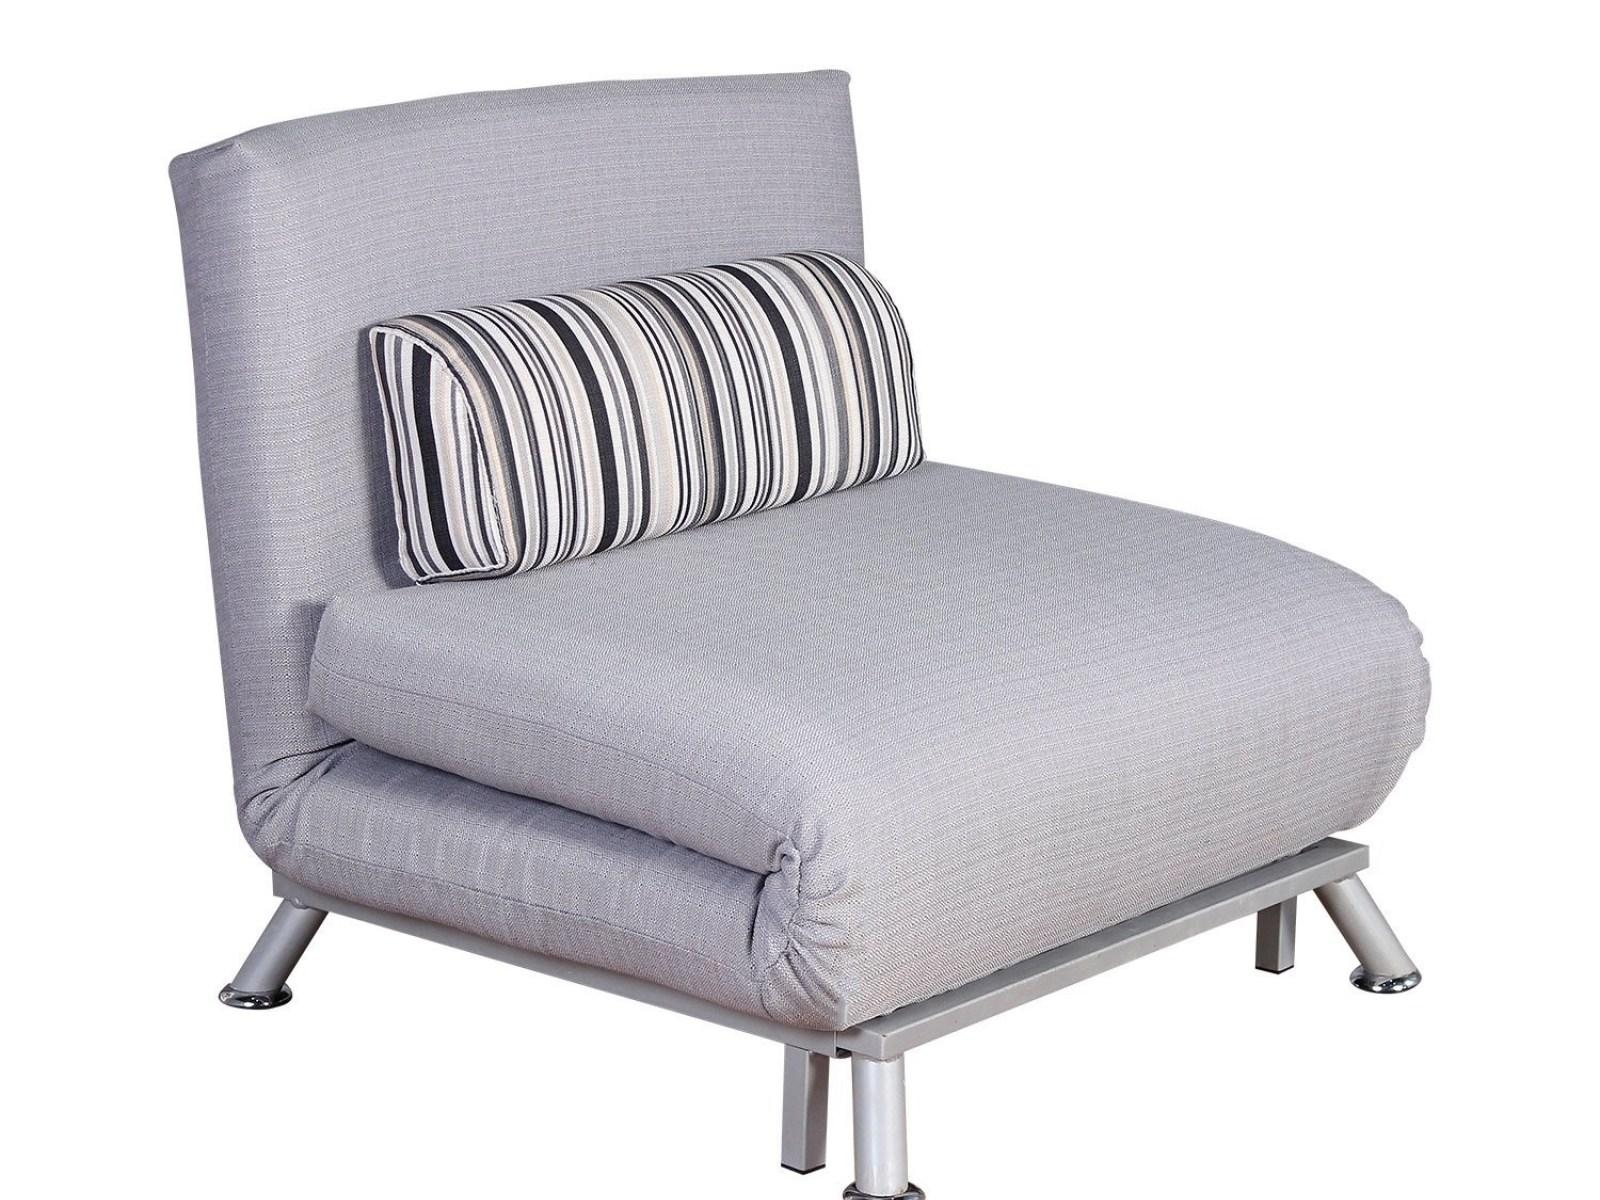 ▻ Sofa : 5 Lovable Single Sofa Sleeper Lovely Cheap Furniture Pertaining To Single Sofa Beds (Image 5 of 20)